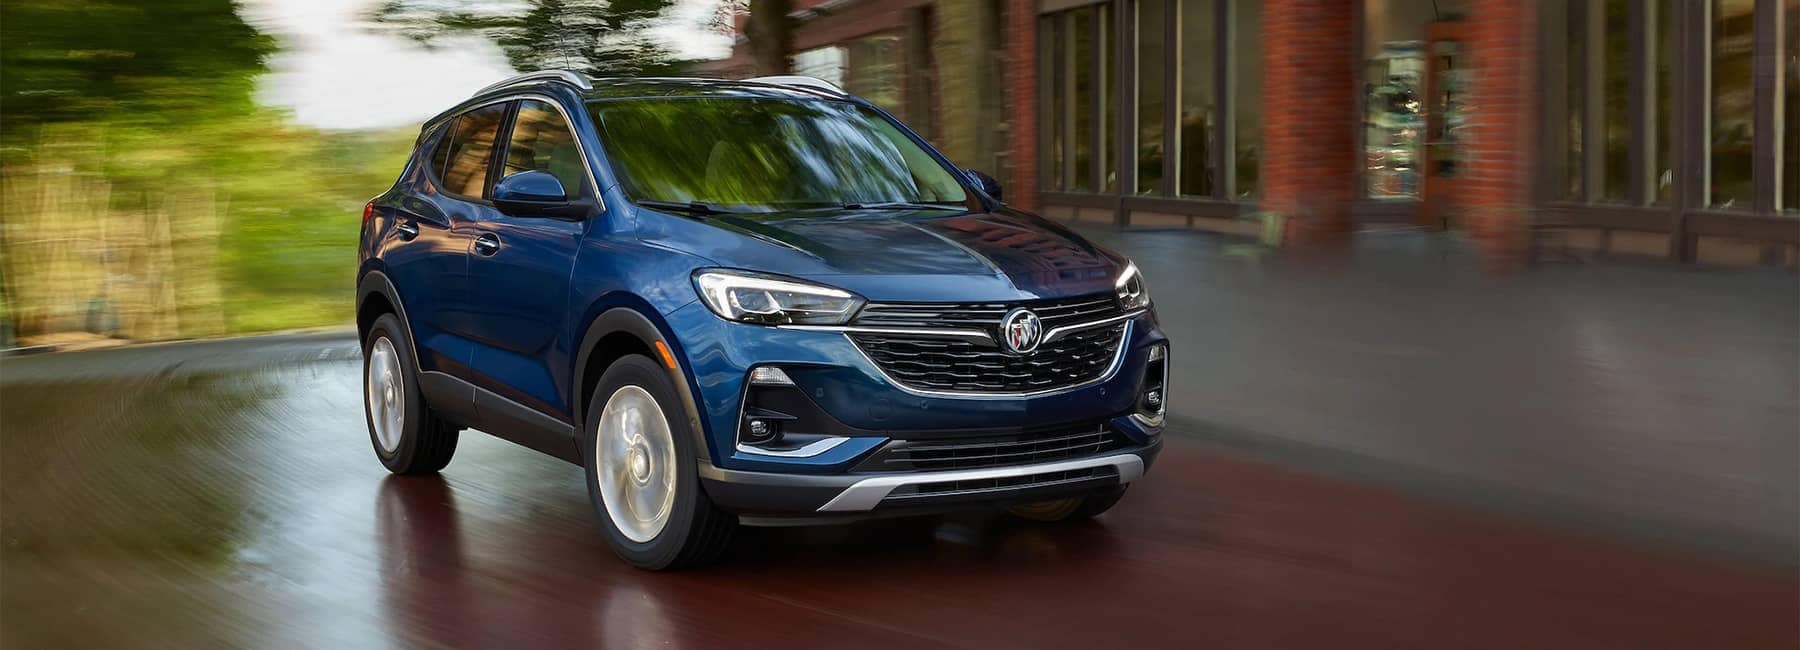 2020 Buick Encore GX Small SUV Front Grille Exterior